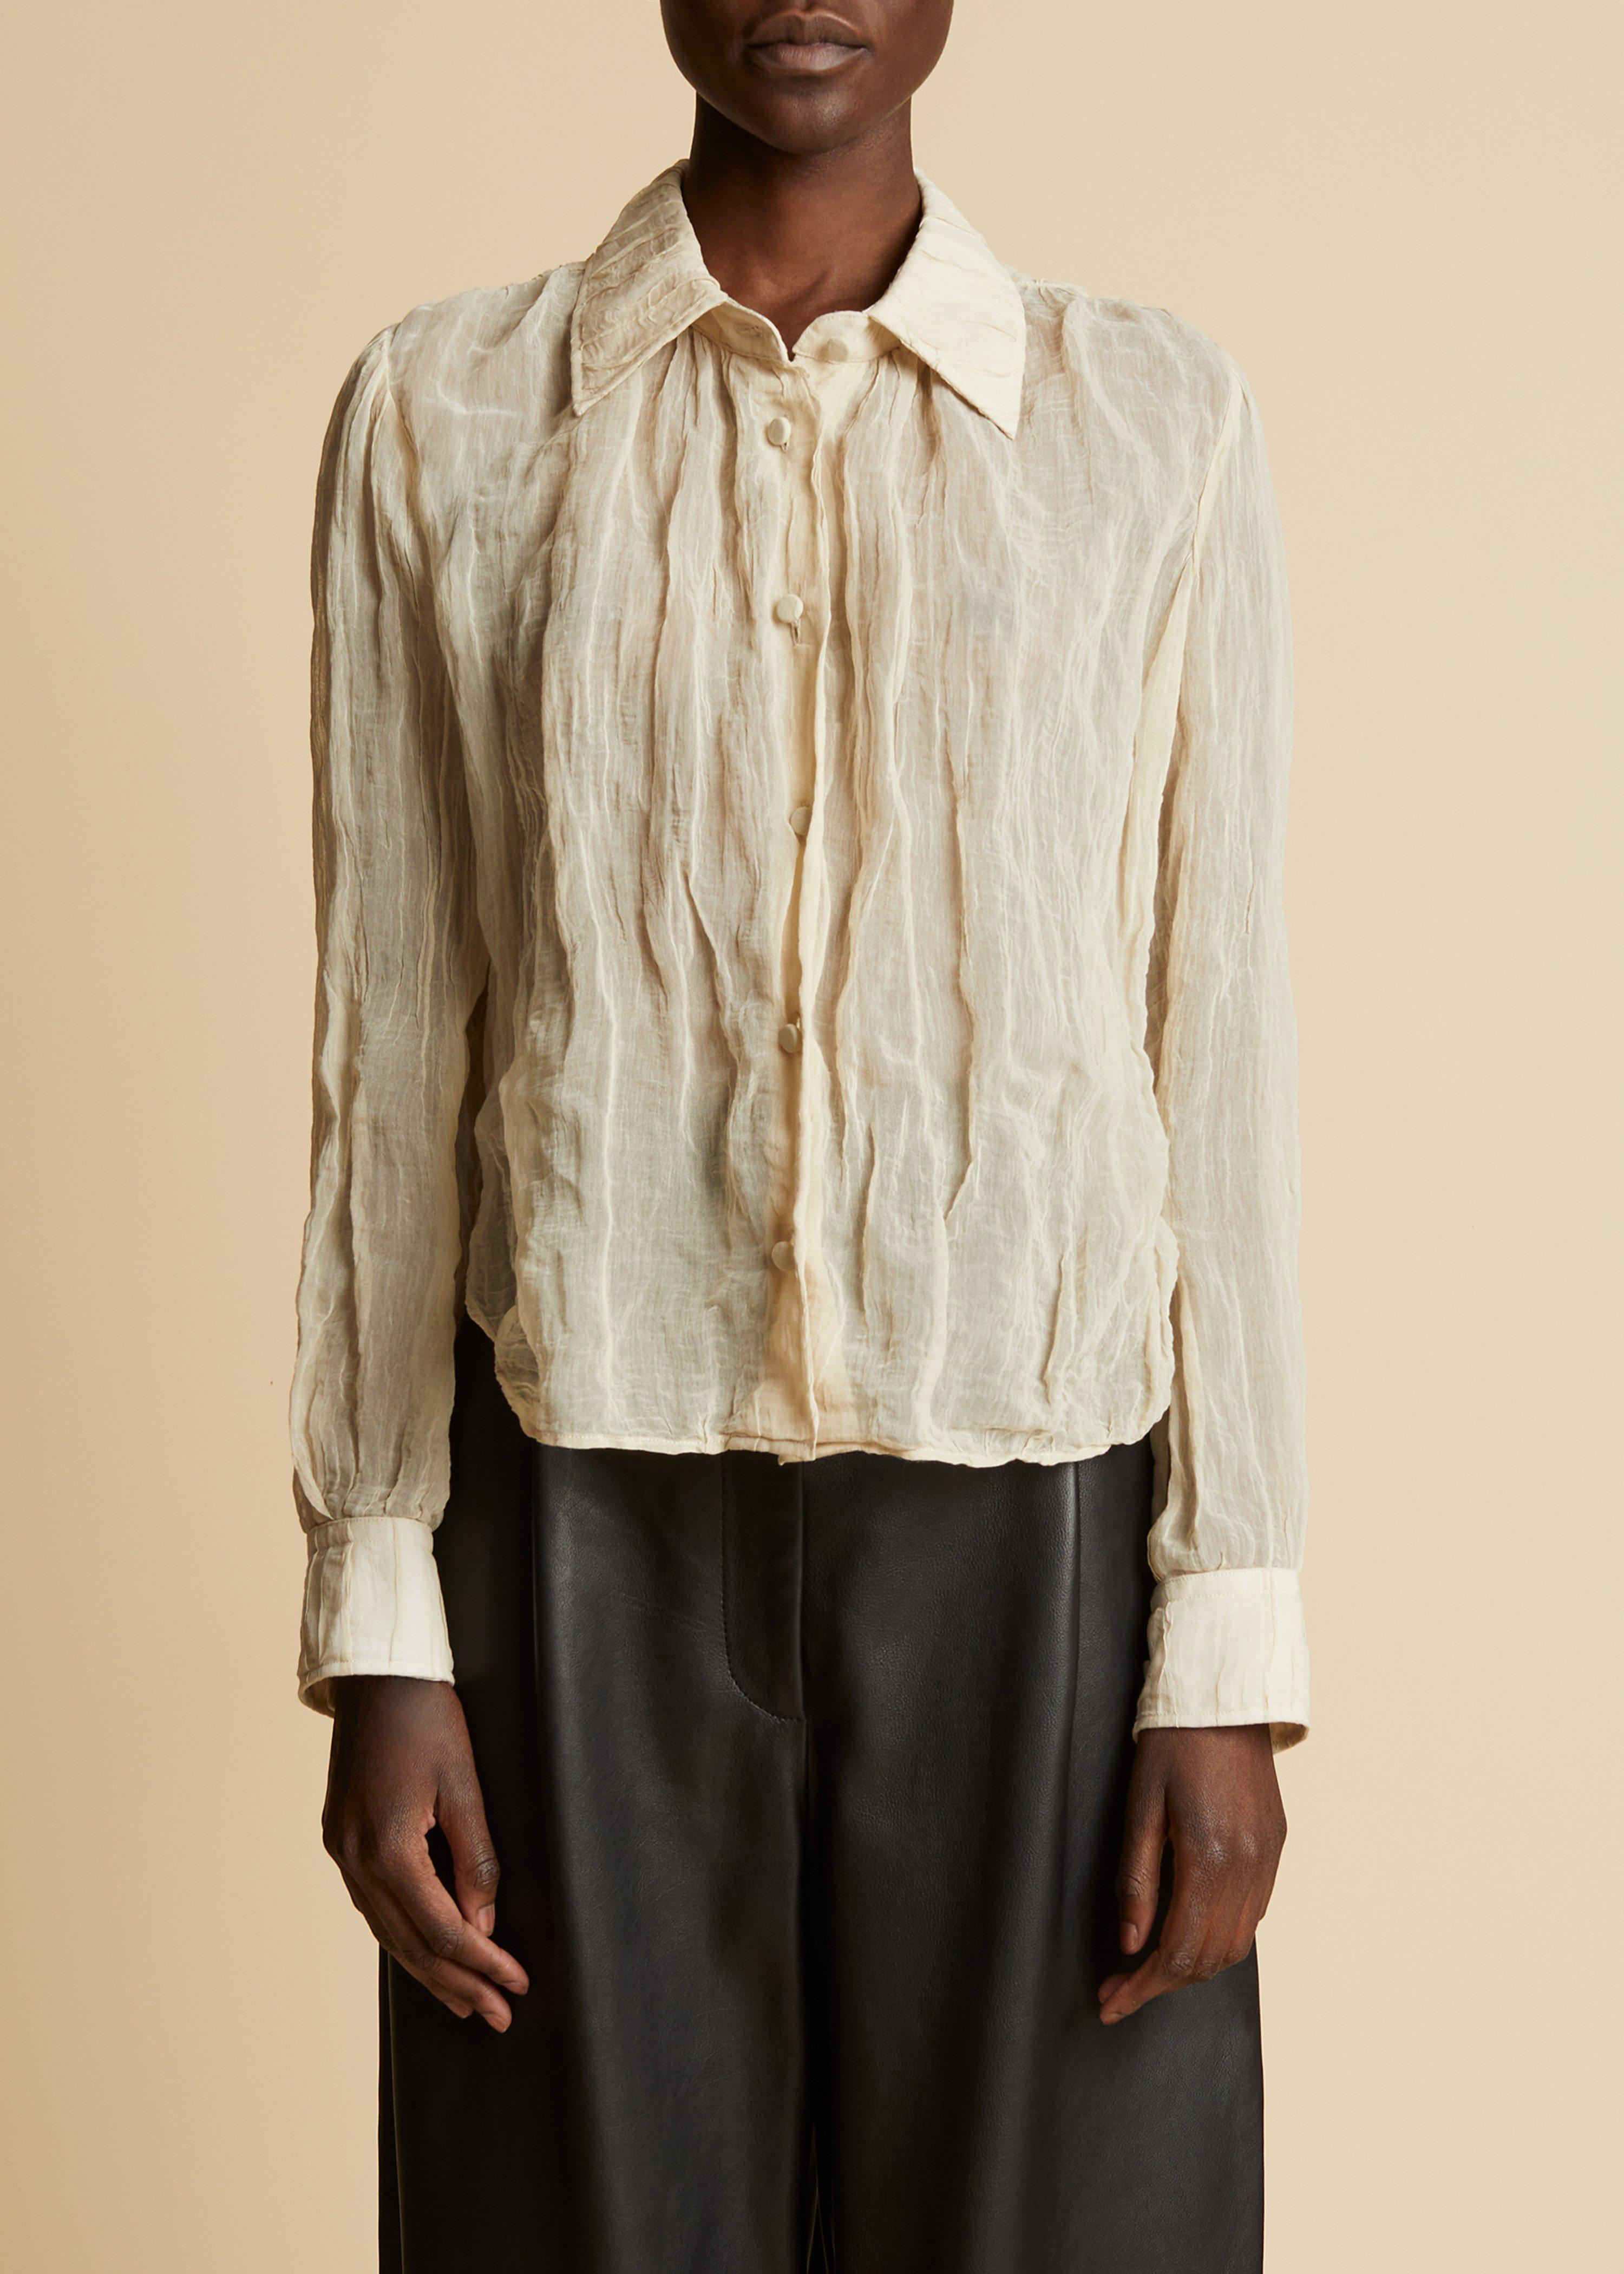 The Francoise Top in Natural